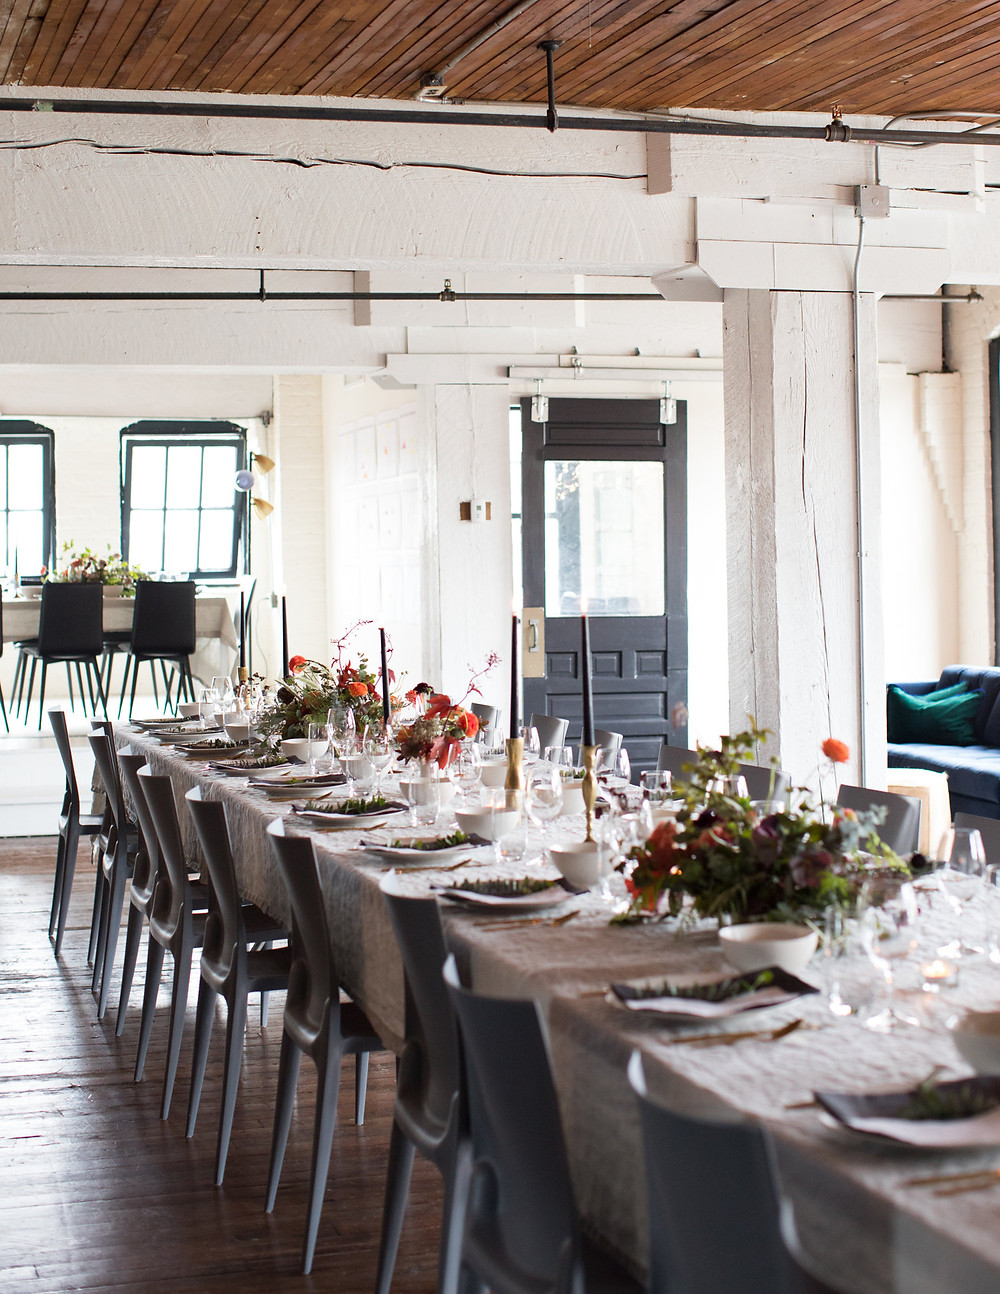 Table setting design, long dinner table and chairs, place settings